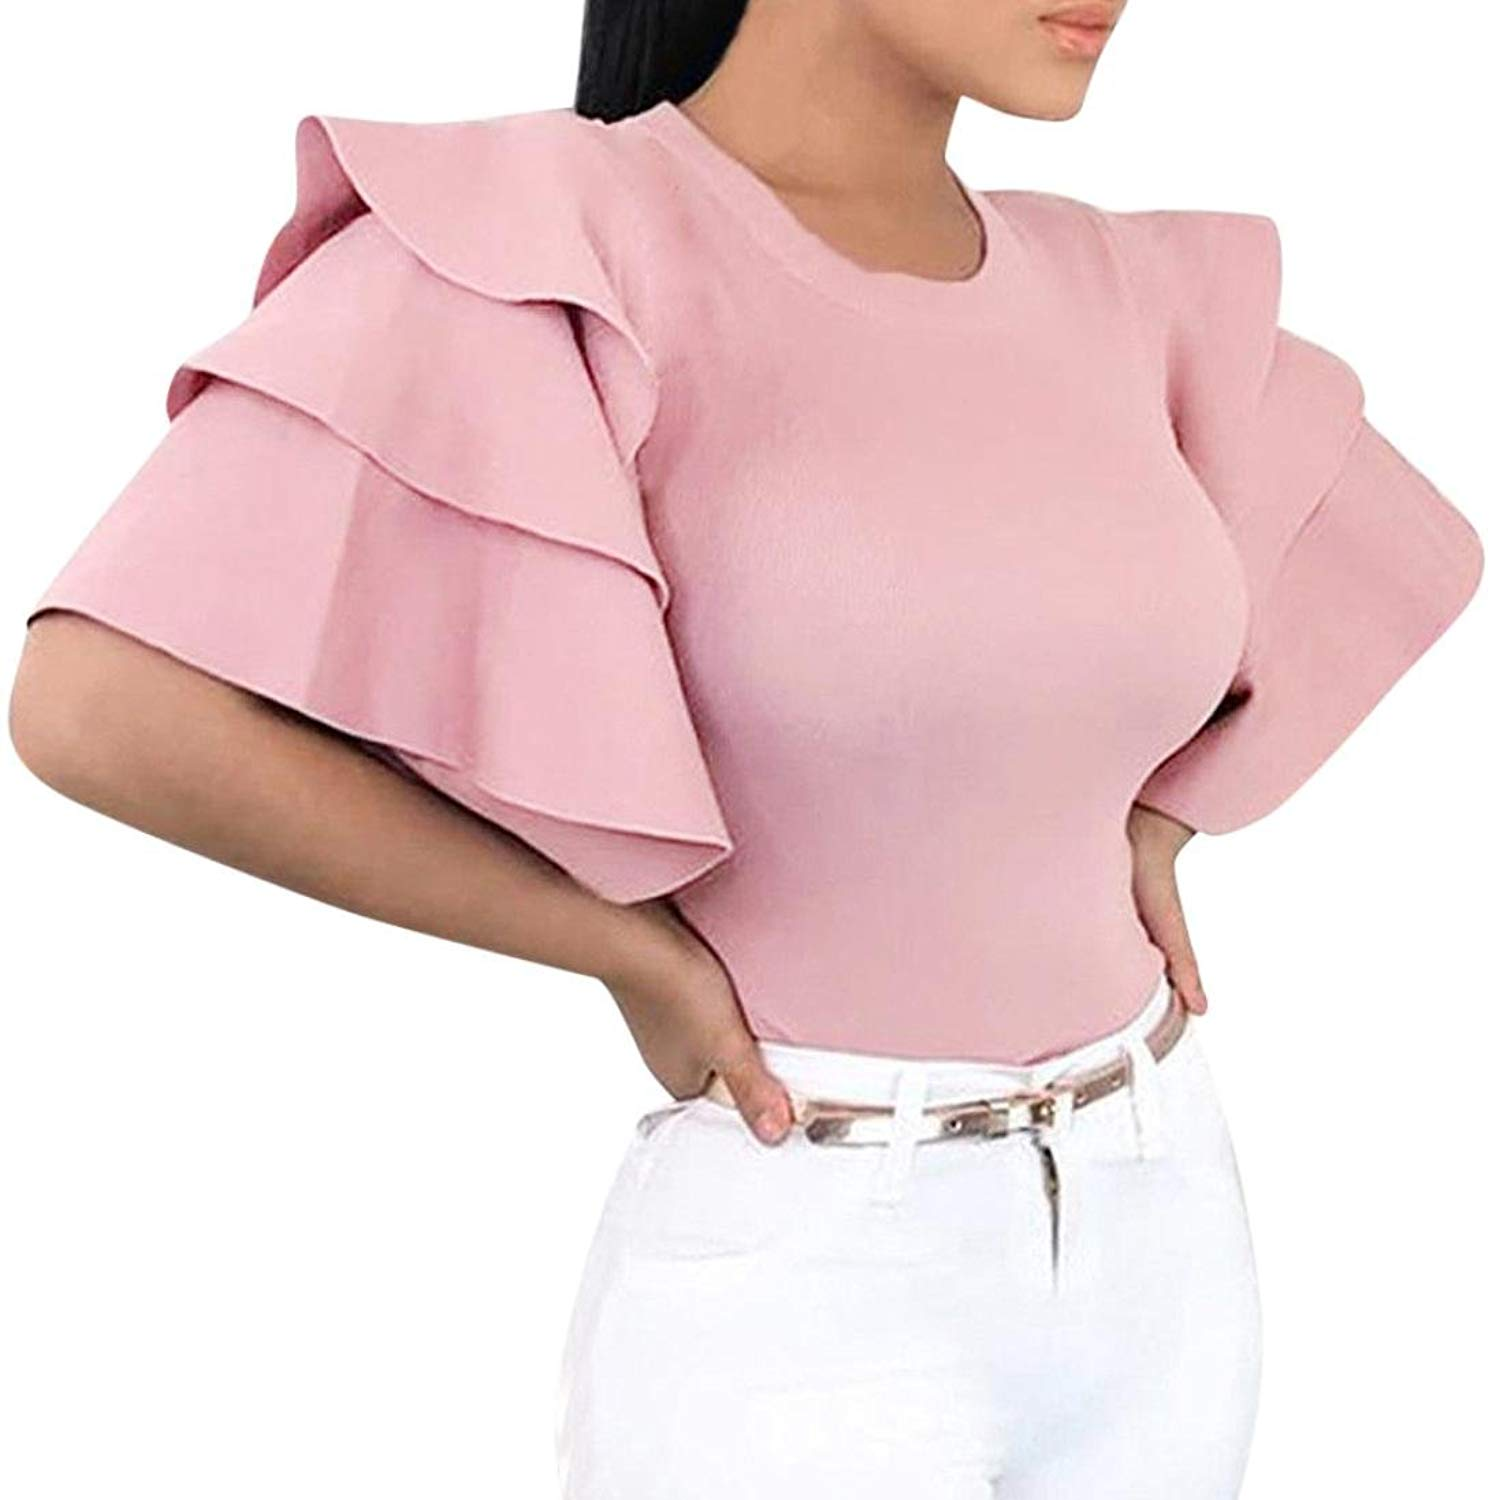 a665bc4a4e1879 Get Quotations · Minisoya Women Casual Ruffle Flare Sleeve Blouse Casual  Evening Party T-Shirt Solid Slim Dressy